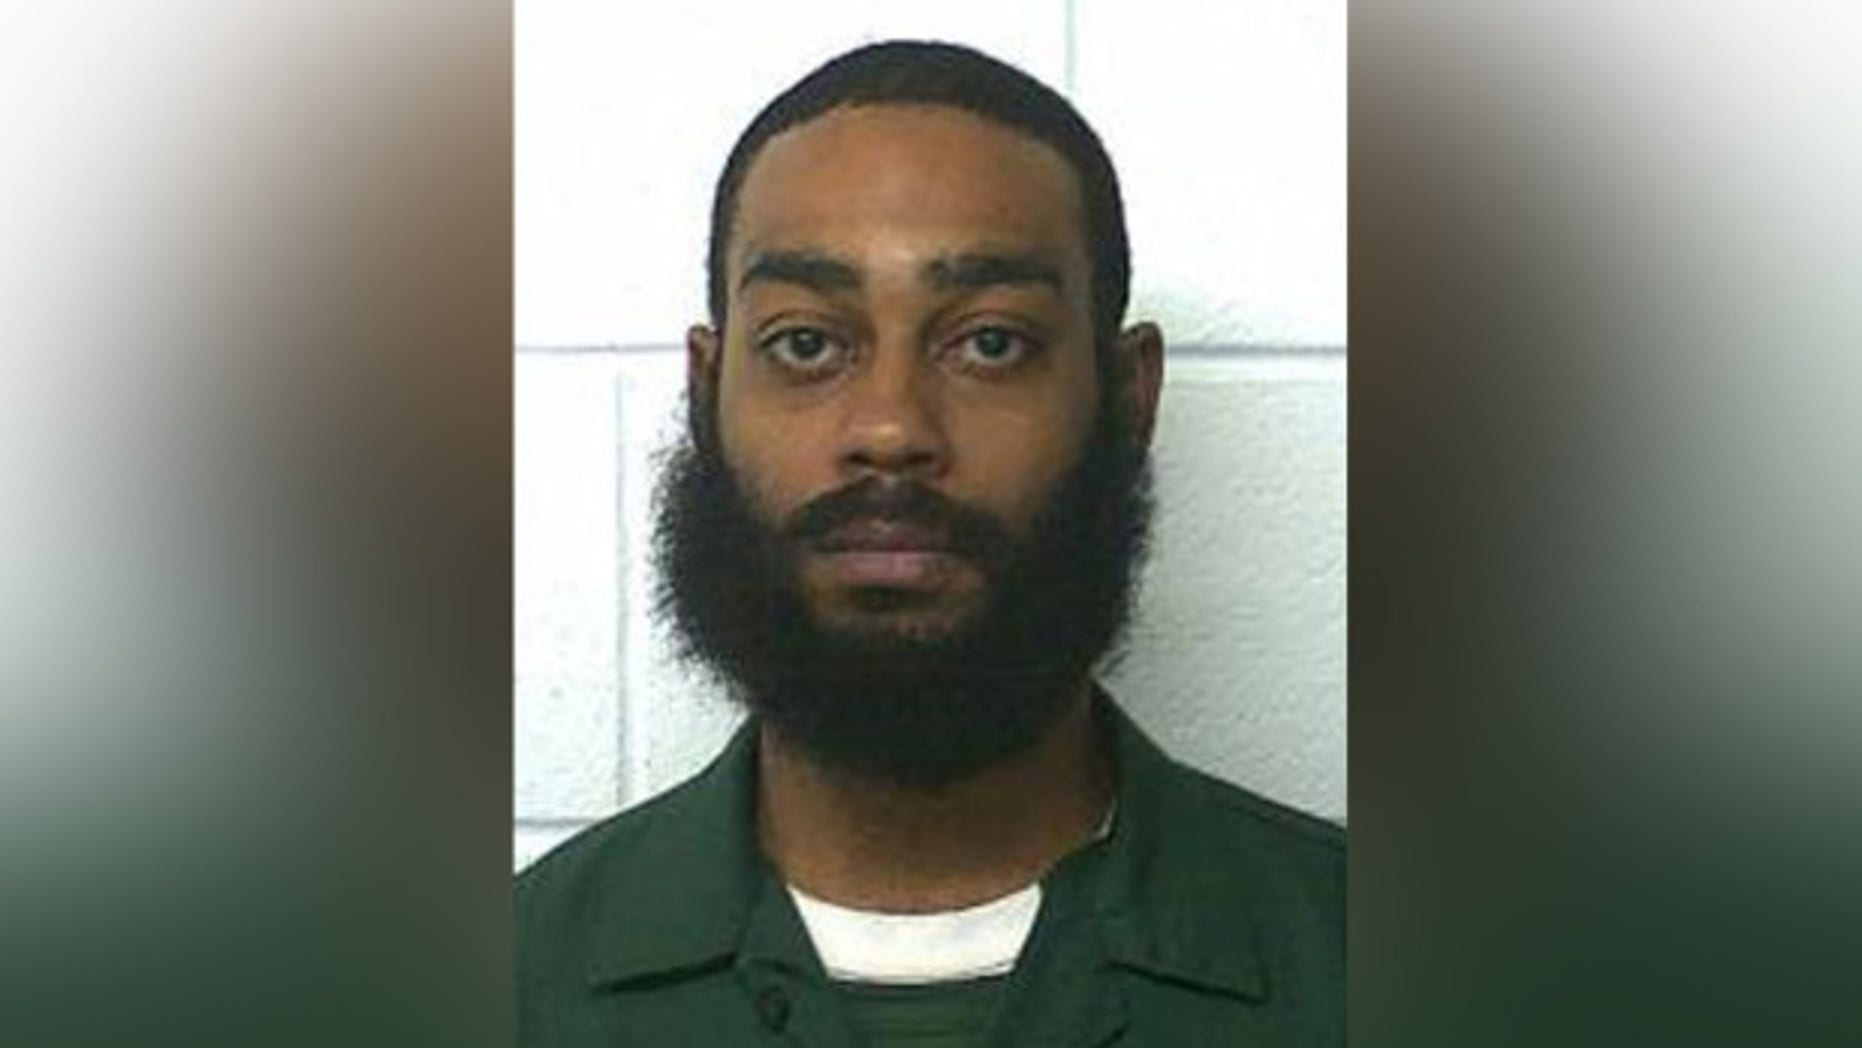 Shawn Harris, who got caught stuffing bottles of hooch in his pants, only to be shot by the store's owner as he tried to get away, wants $2.7 million for his injuries.